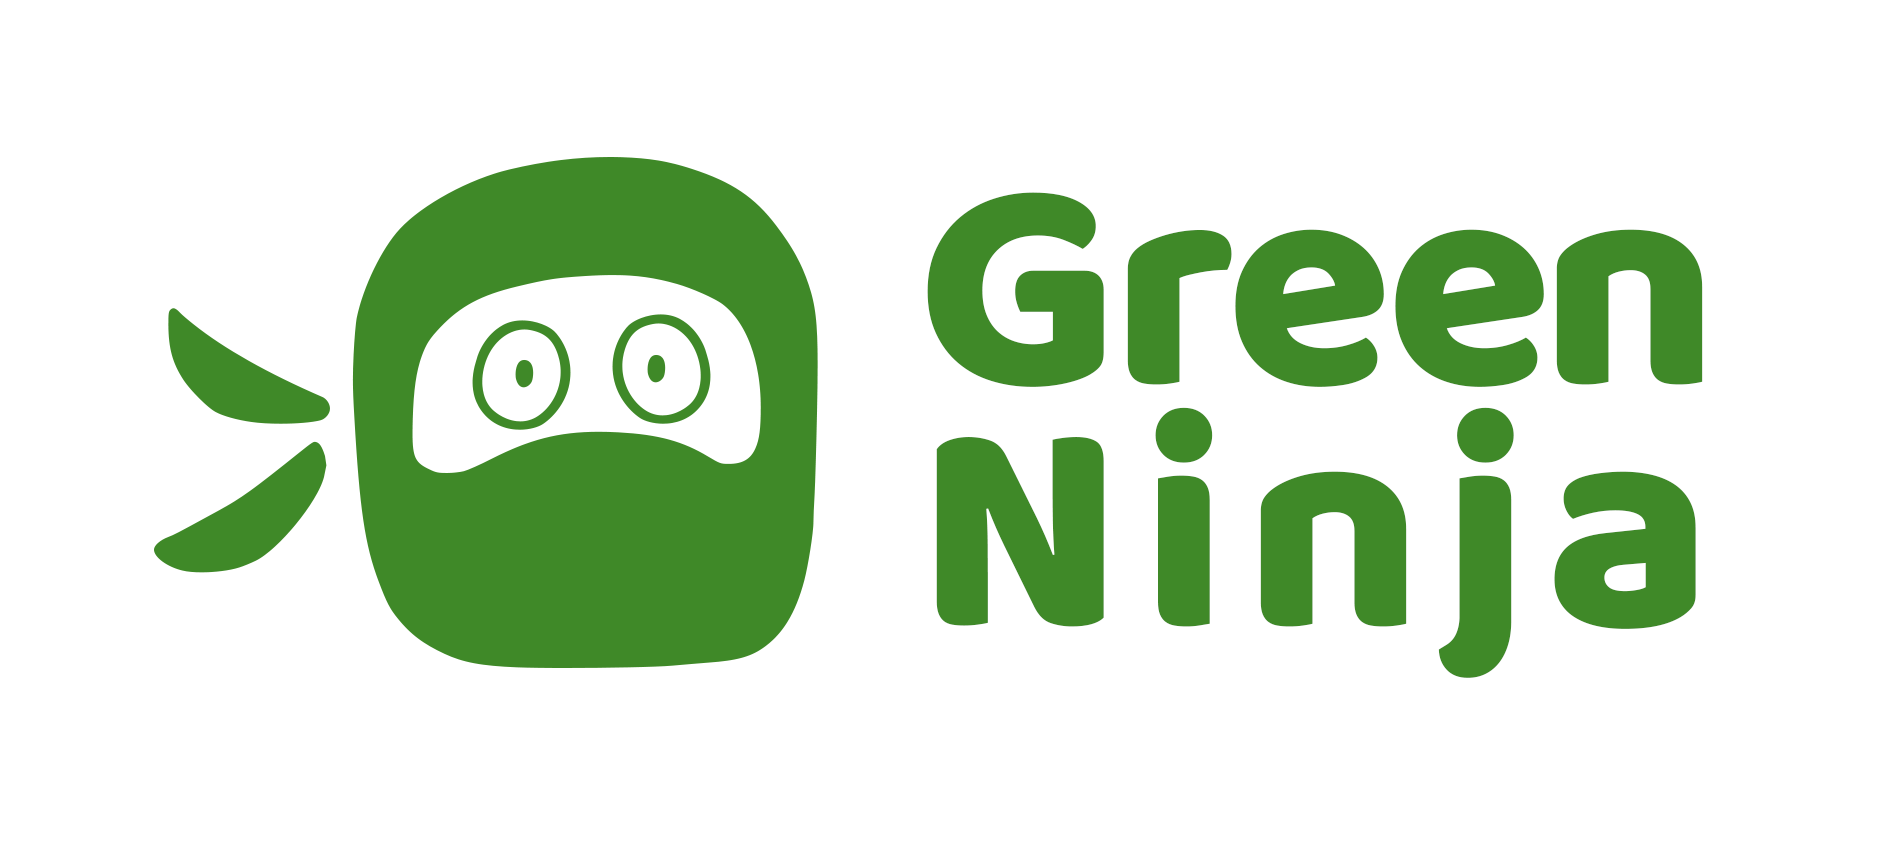 Environment clipart greenhouse effect. Welcome to green ninja